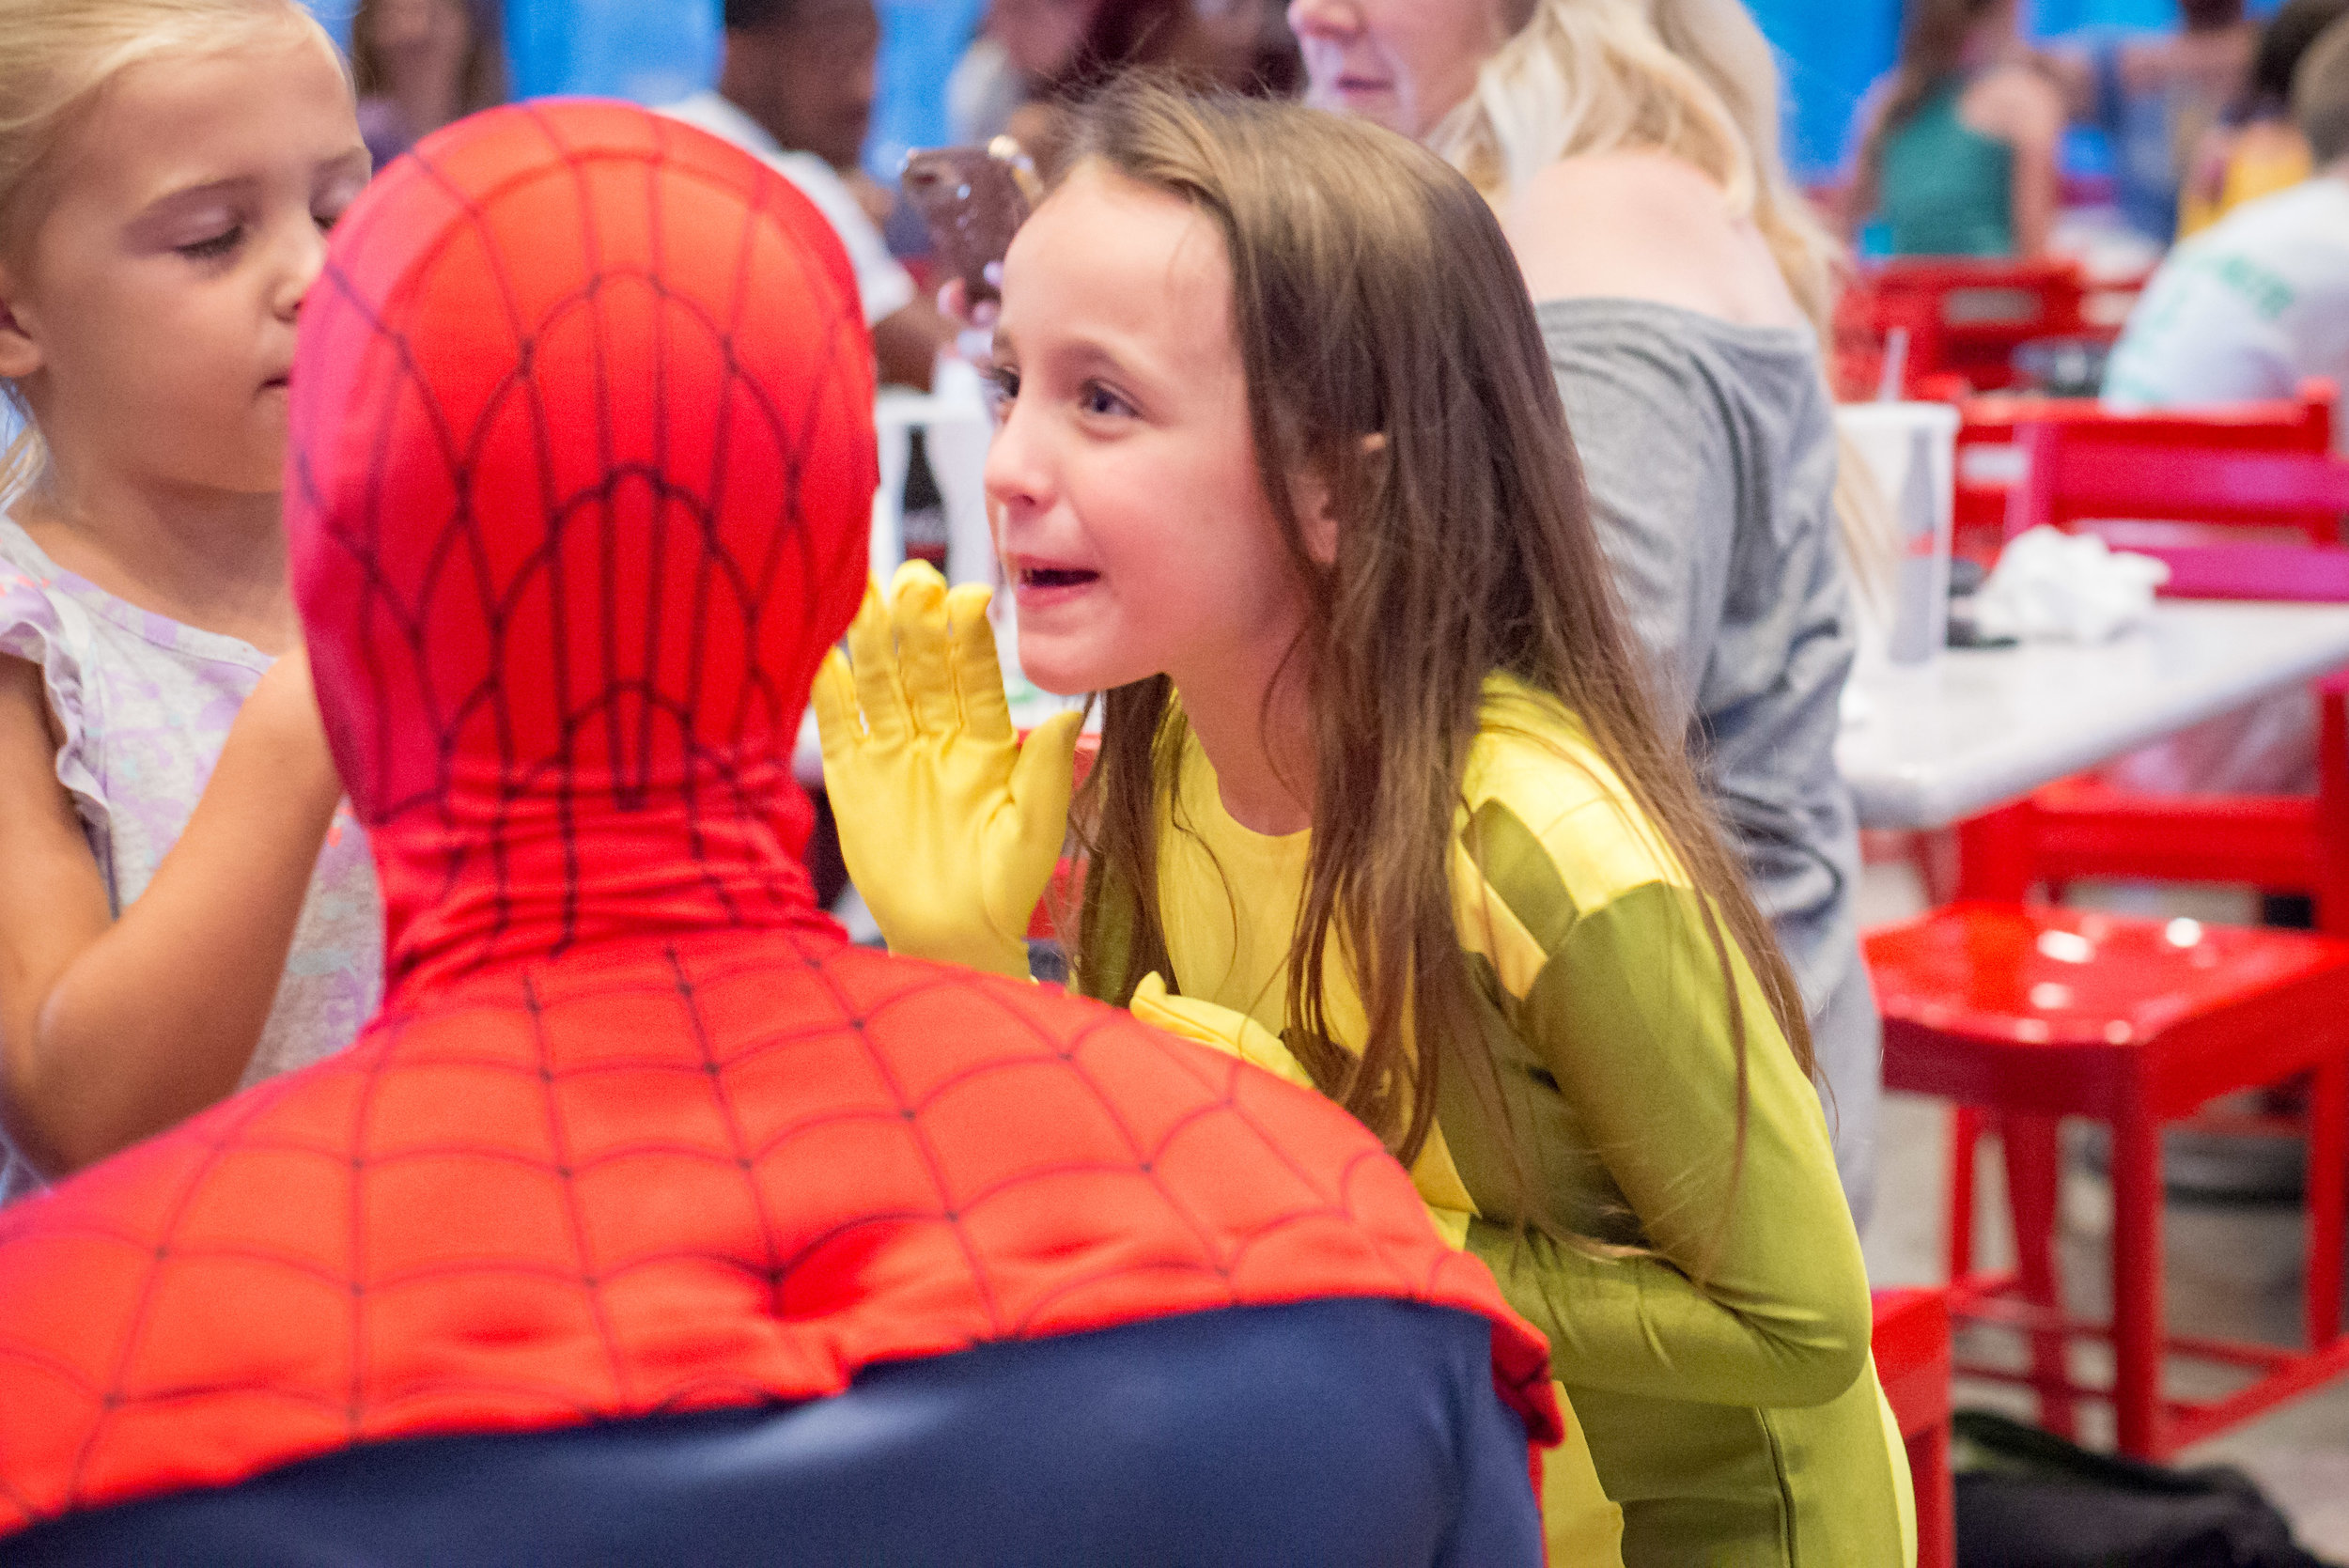 Telling Spidey secrets about who-knows-what